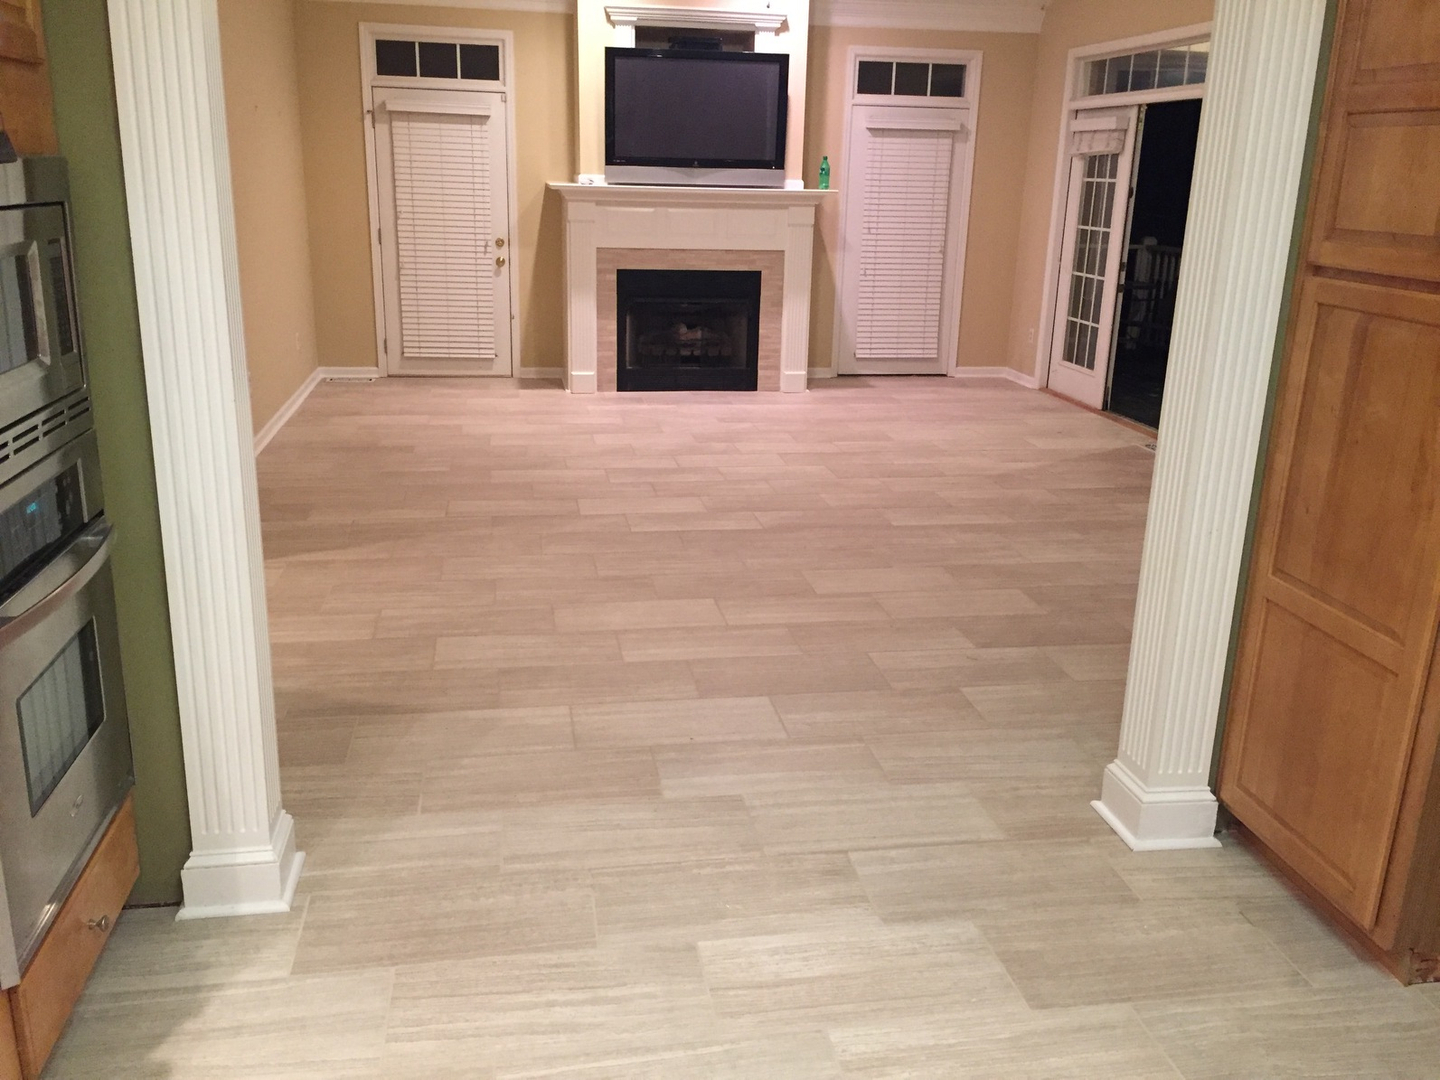 Rocky top flooring installs tile and hardwood vinyl and carpet polished tile concession countertop porcelain tile floors and base dailygadgetfo Choice Image